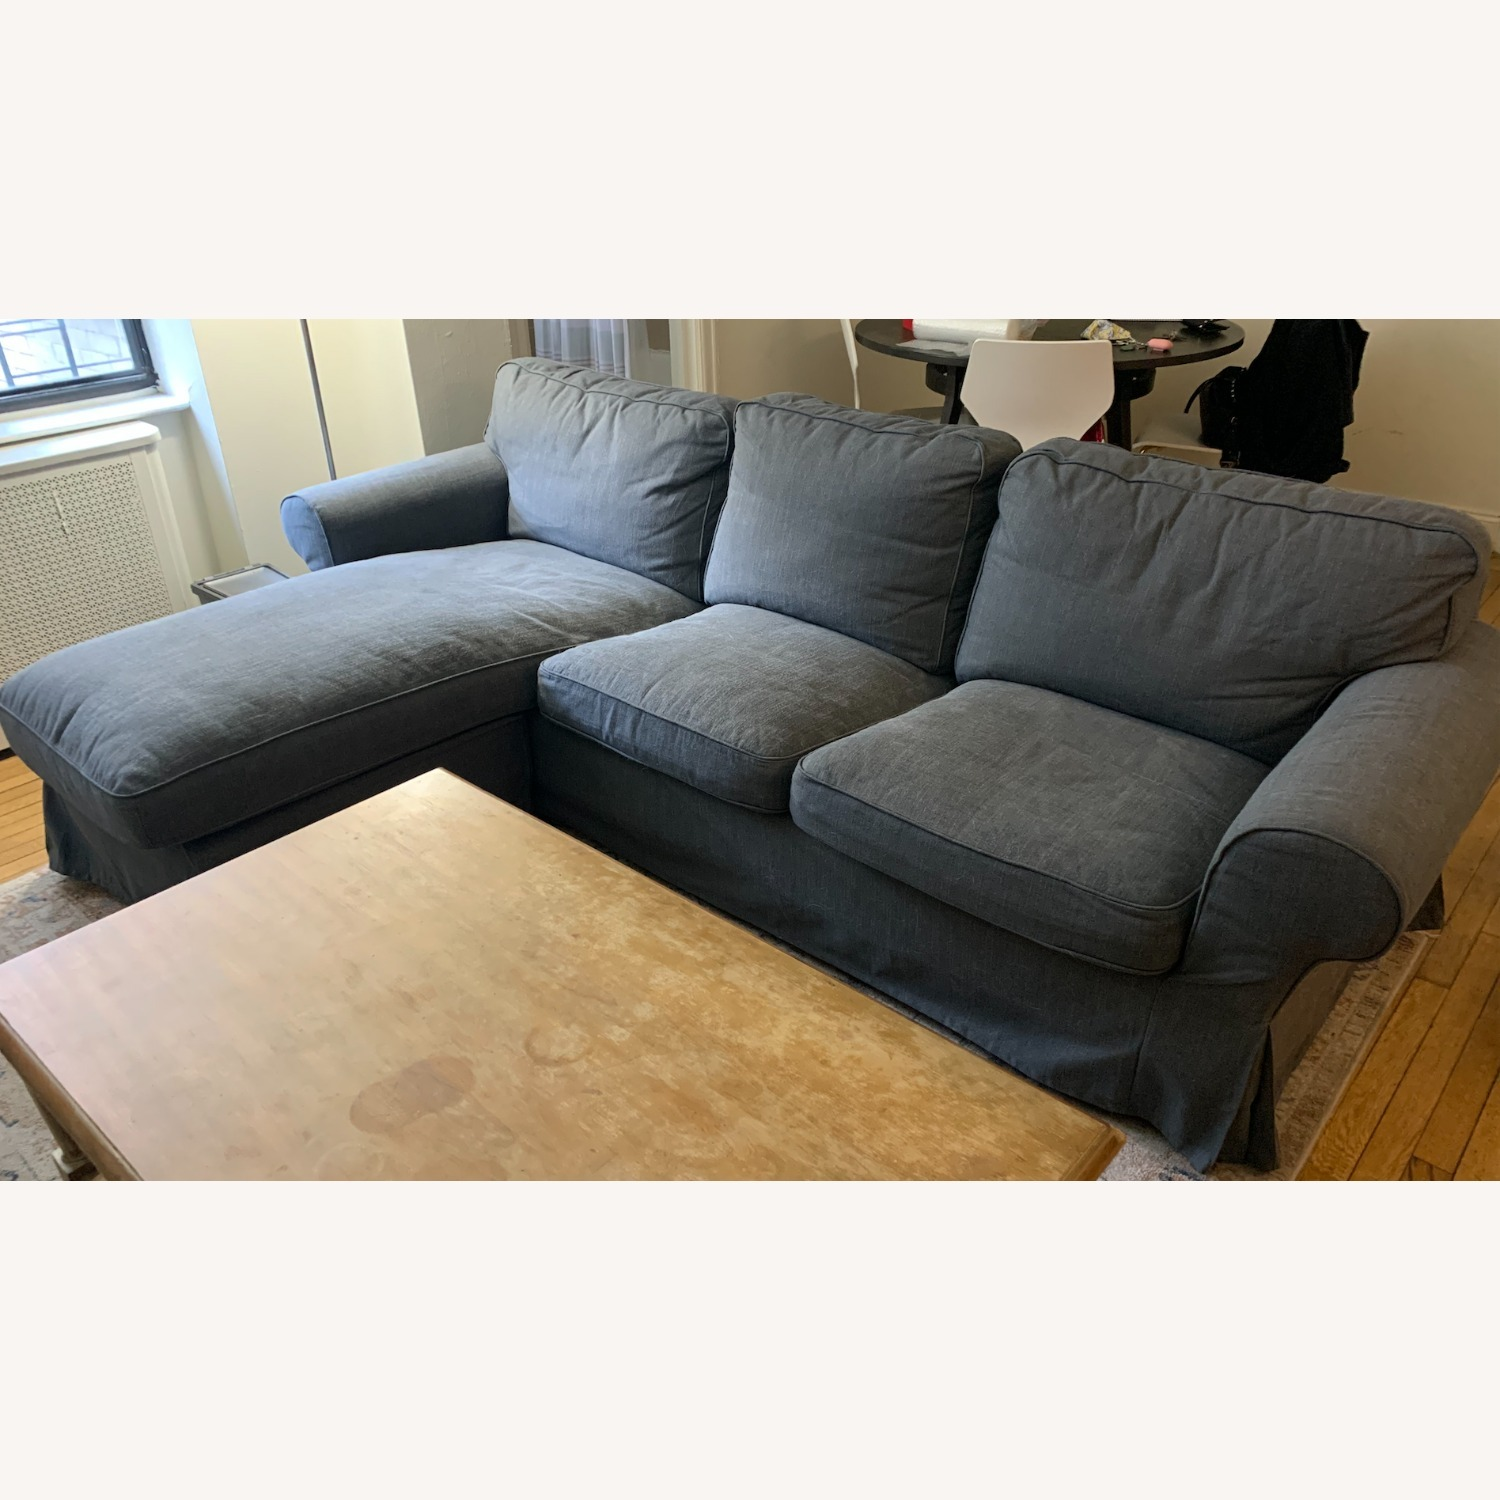 IKEA Grey 3-Seat Sofa with Chaise - image-1